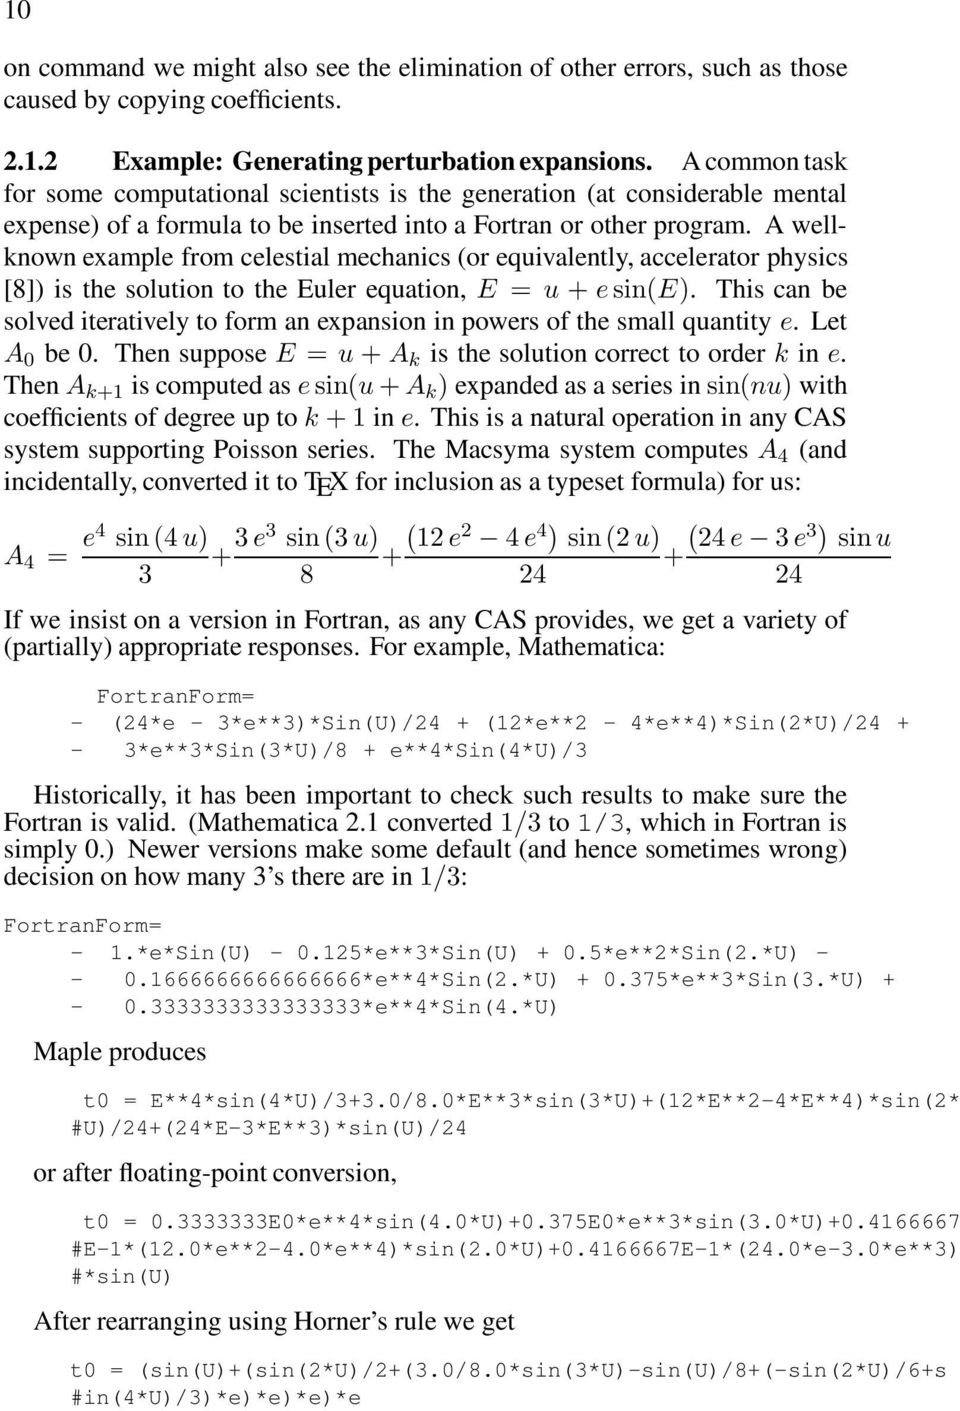 Chapter 1 PROBLEM SOLVING ENVIRONMENTS AND SYMBOLIC COMPUTING 1